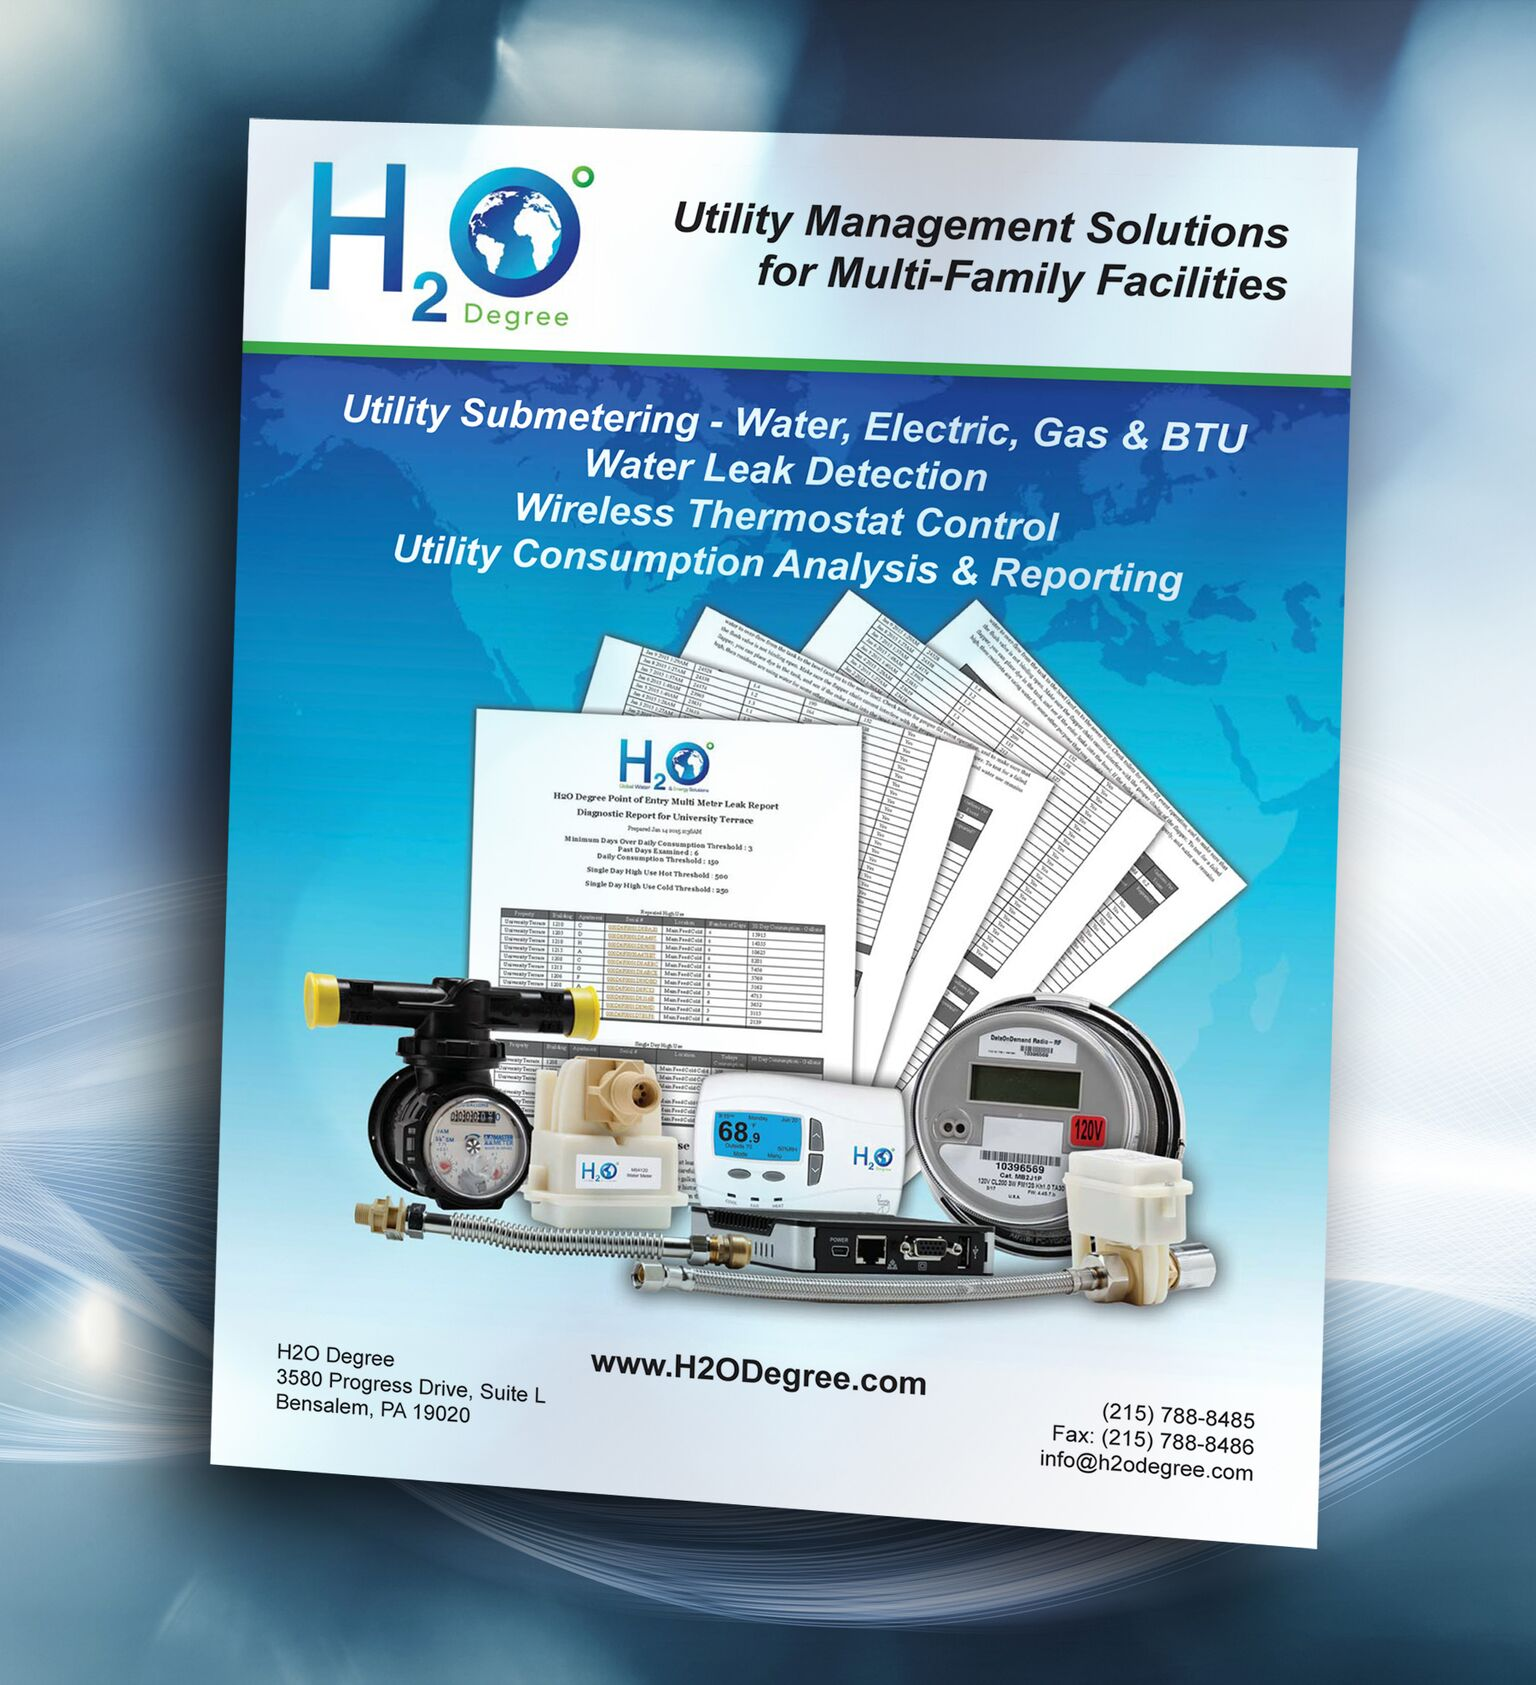 60-Page Catalog Features Utility Management, Leak Detection, Submetering, Thermostat Control, and Reporting Solutions for Multi-Family Facilities